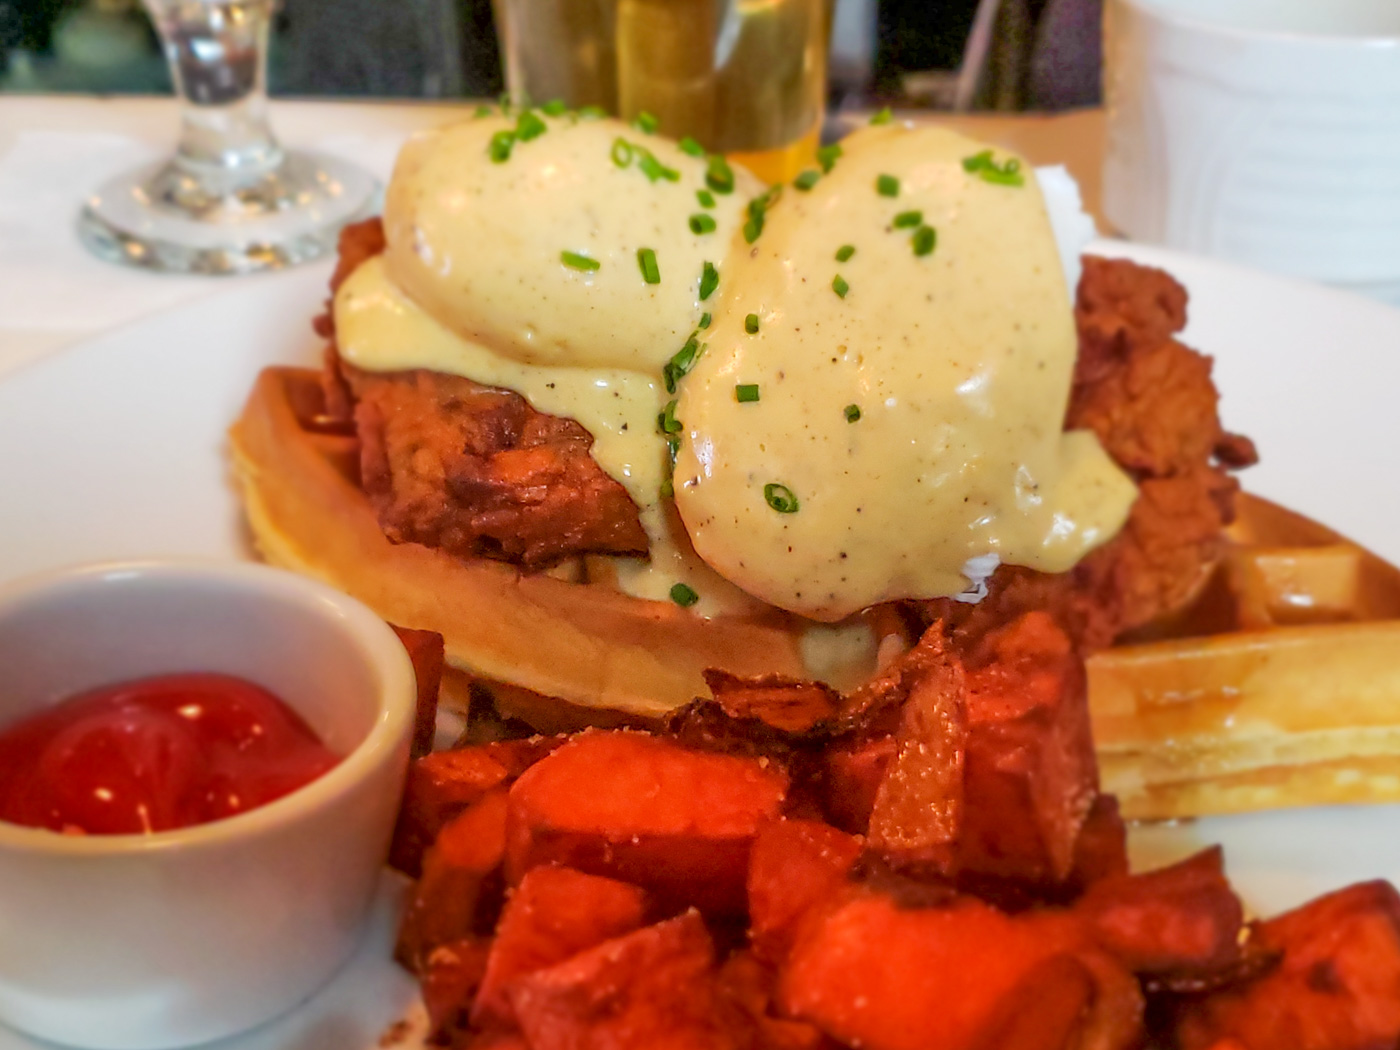 Chicken and Waffles Benedict at Rex1516